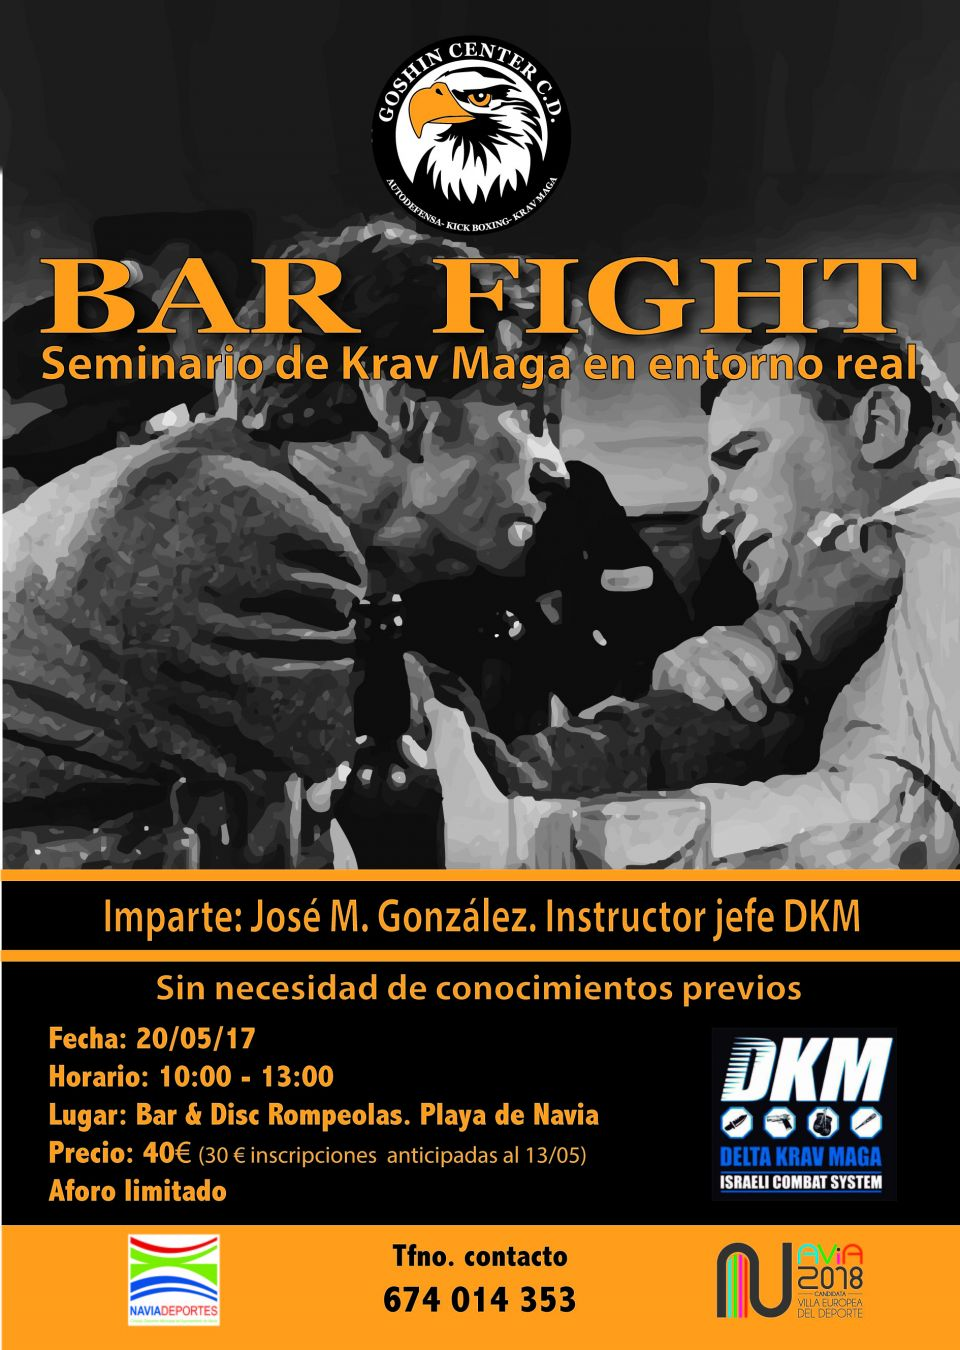 Bar Fight: seminario de Krav Maga en entorno real en Navia